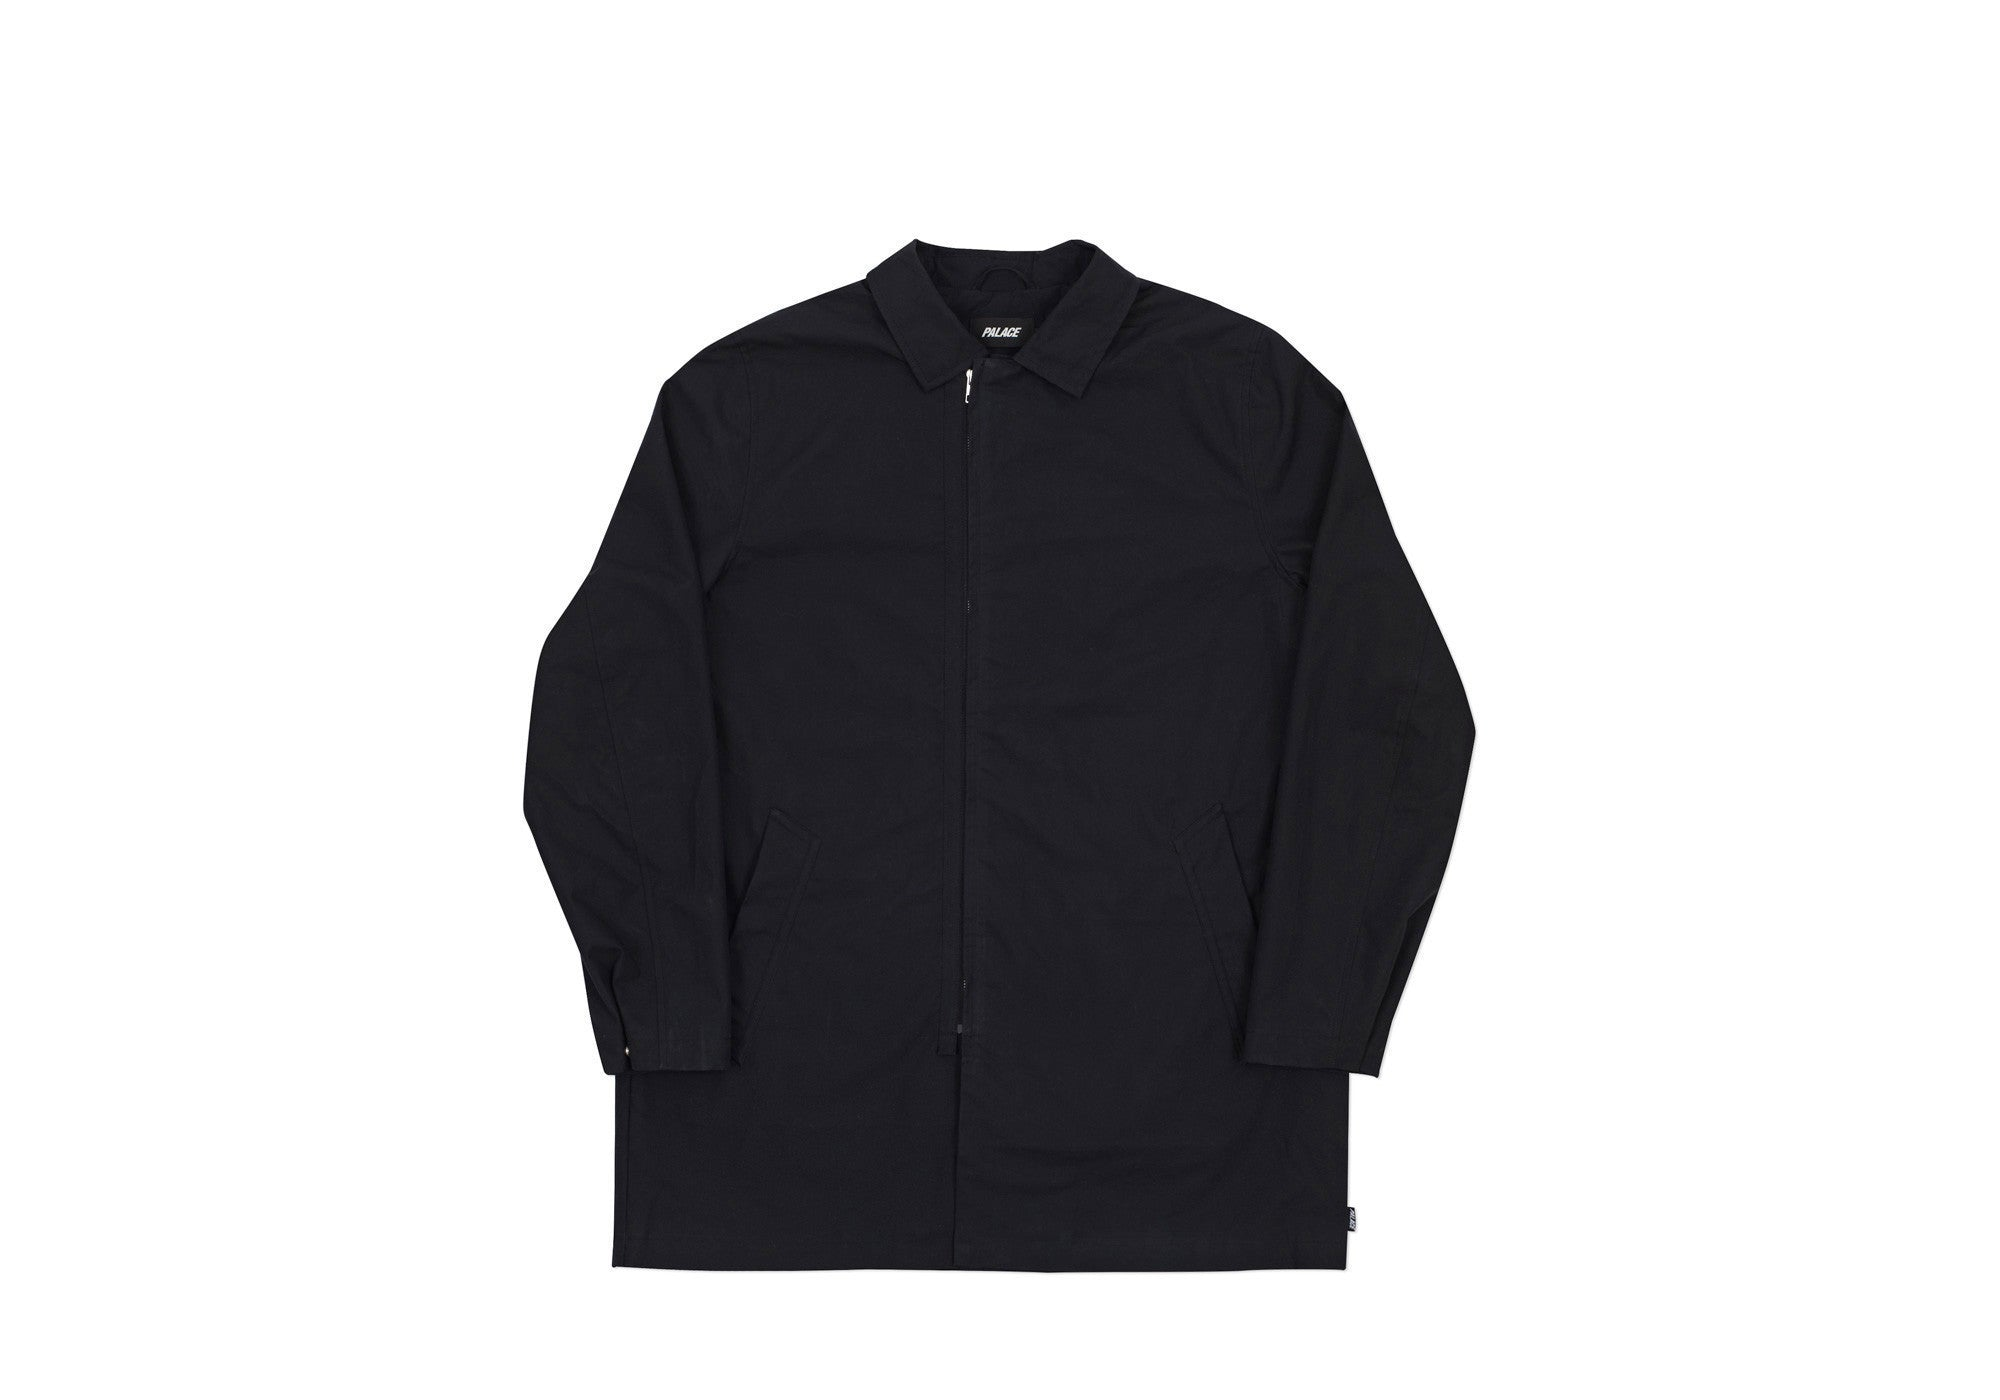 MACH 10 VENTILE JACKET BLACK